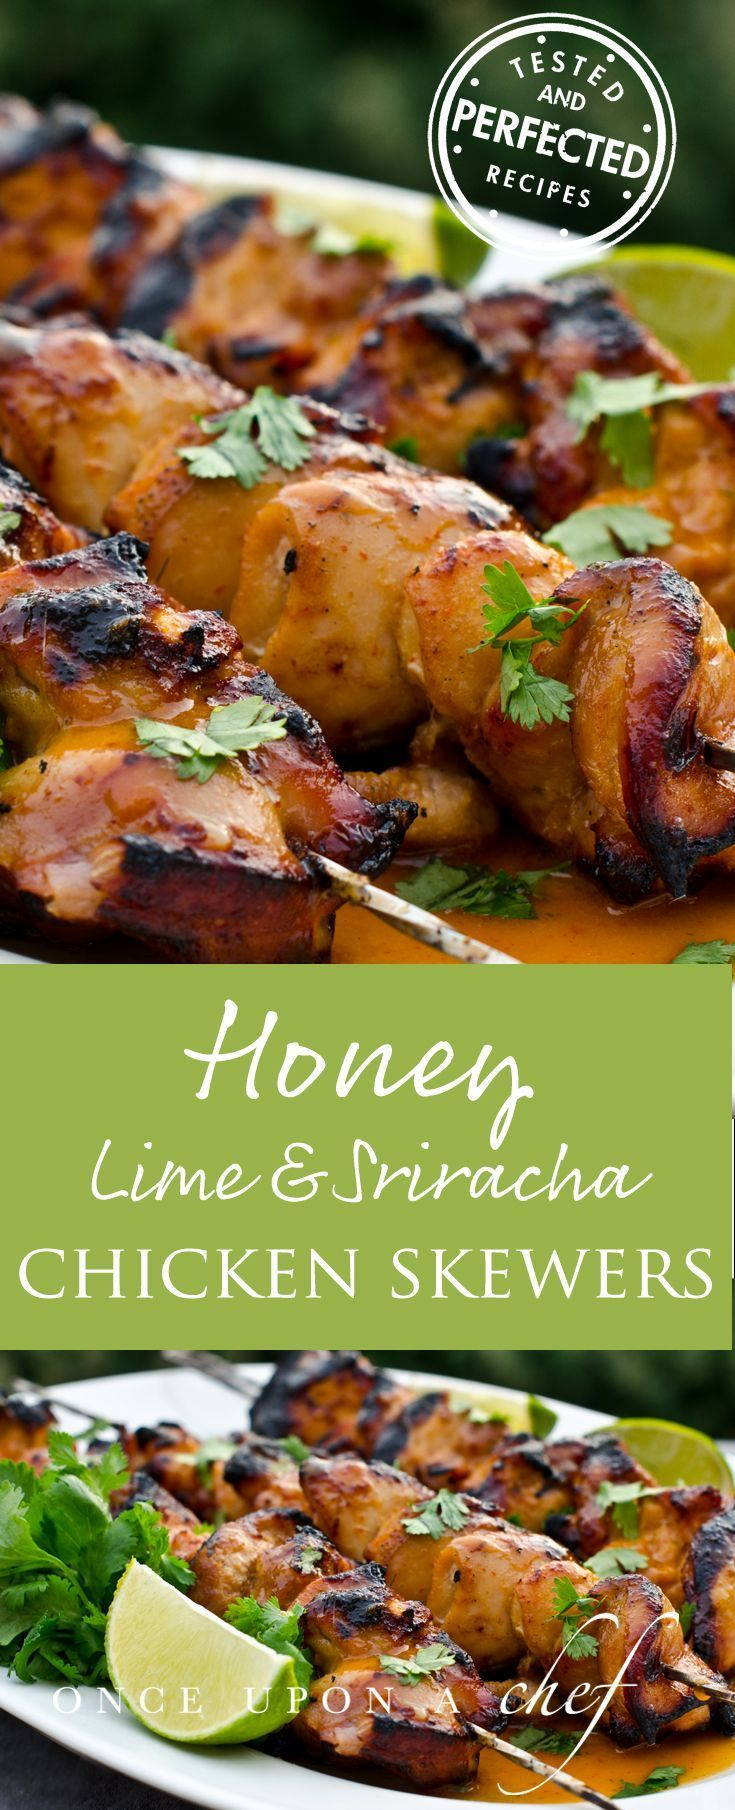 Honey, Lime & Sriracha Chicken Skewers